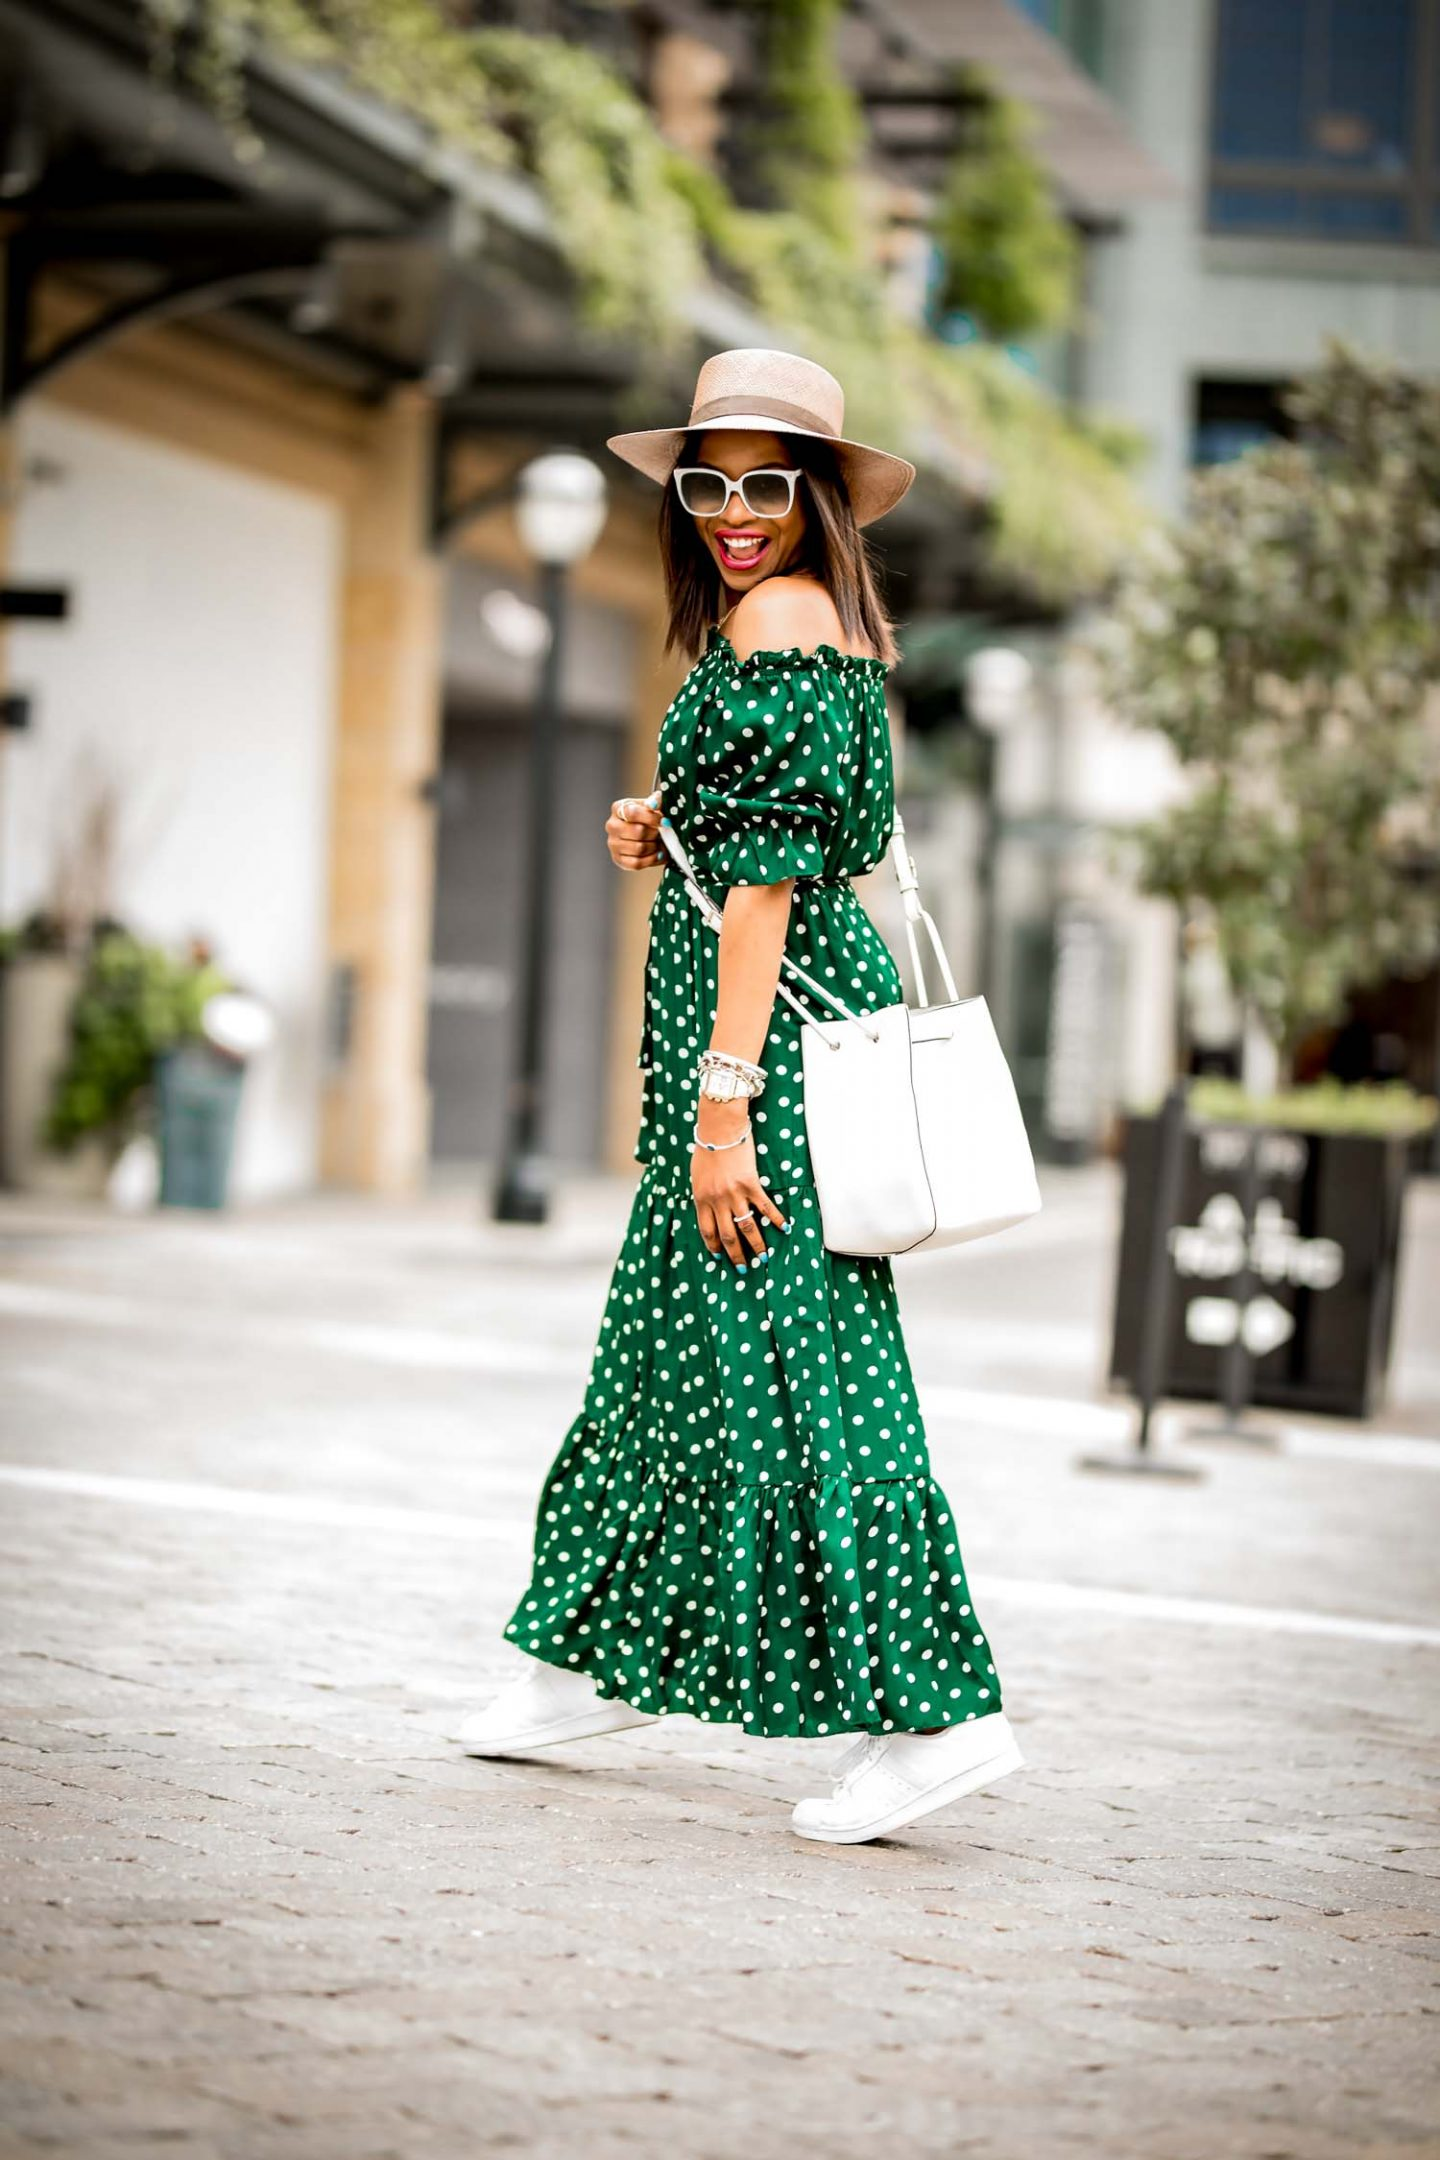 Polka Dots Spring Dress And How To Make It Modern And On Trend